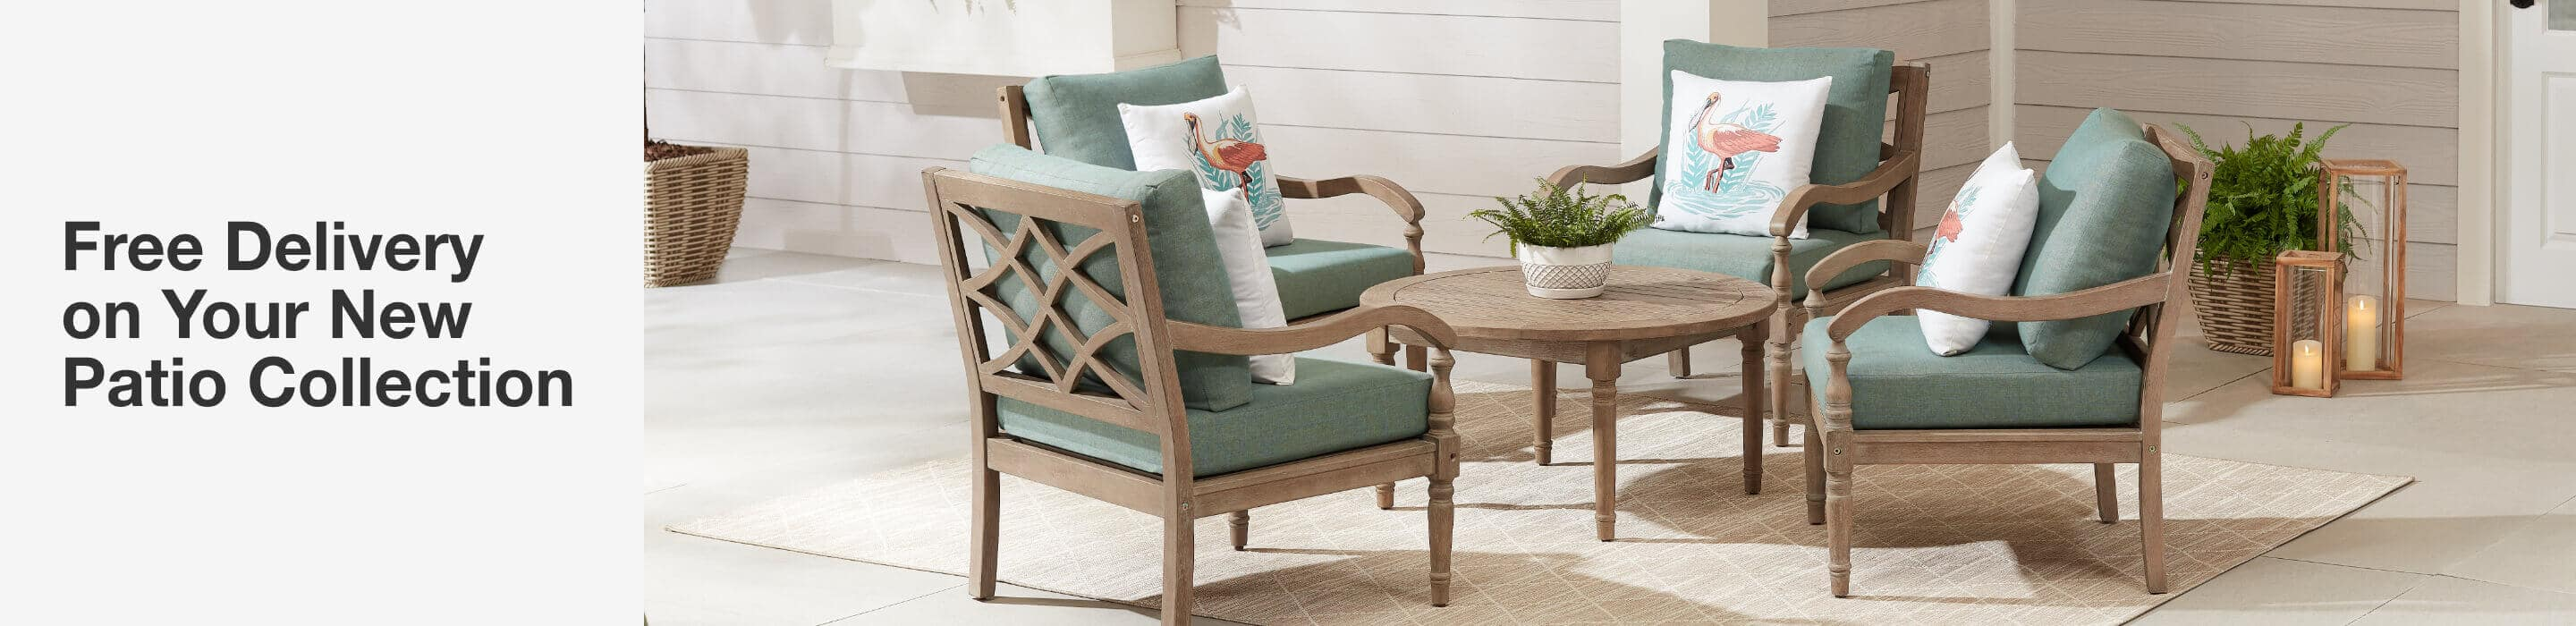 Free delivery on your new patio furniture